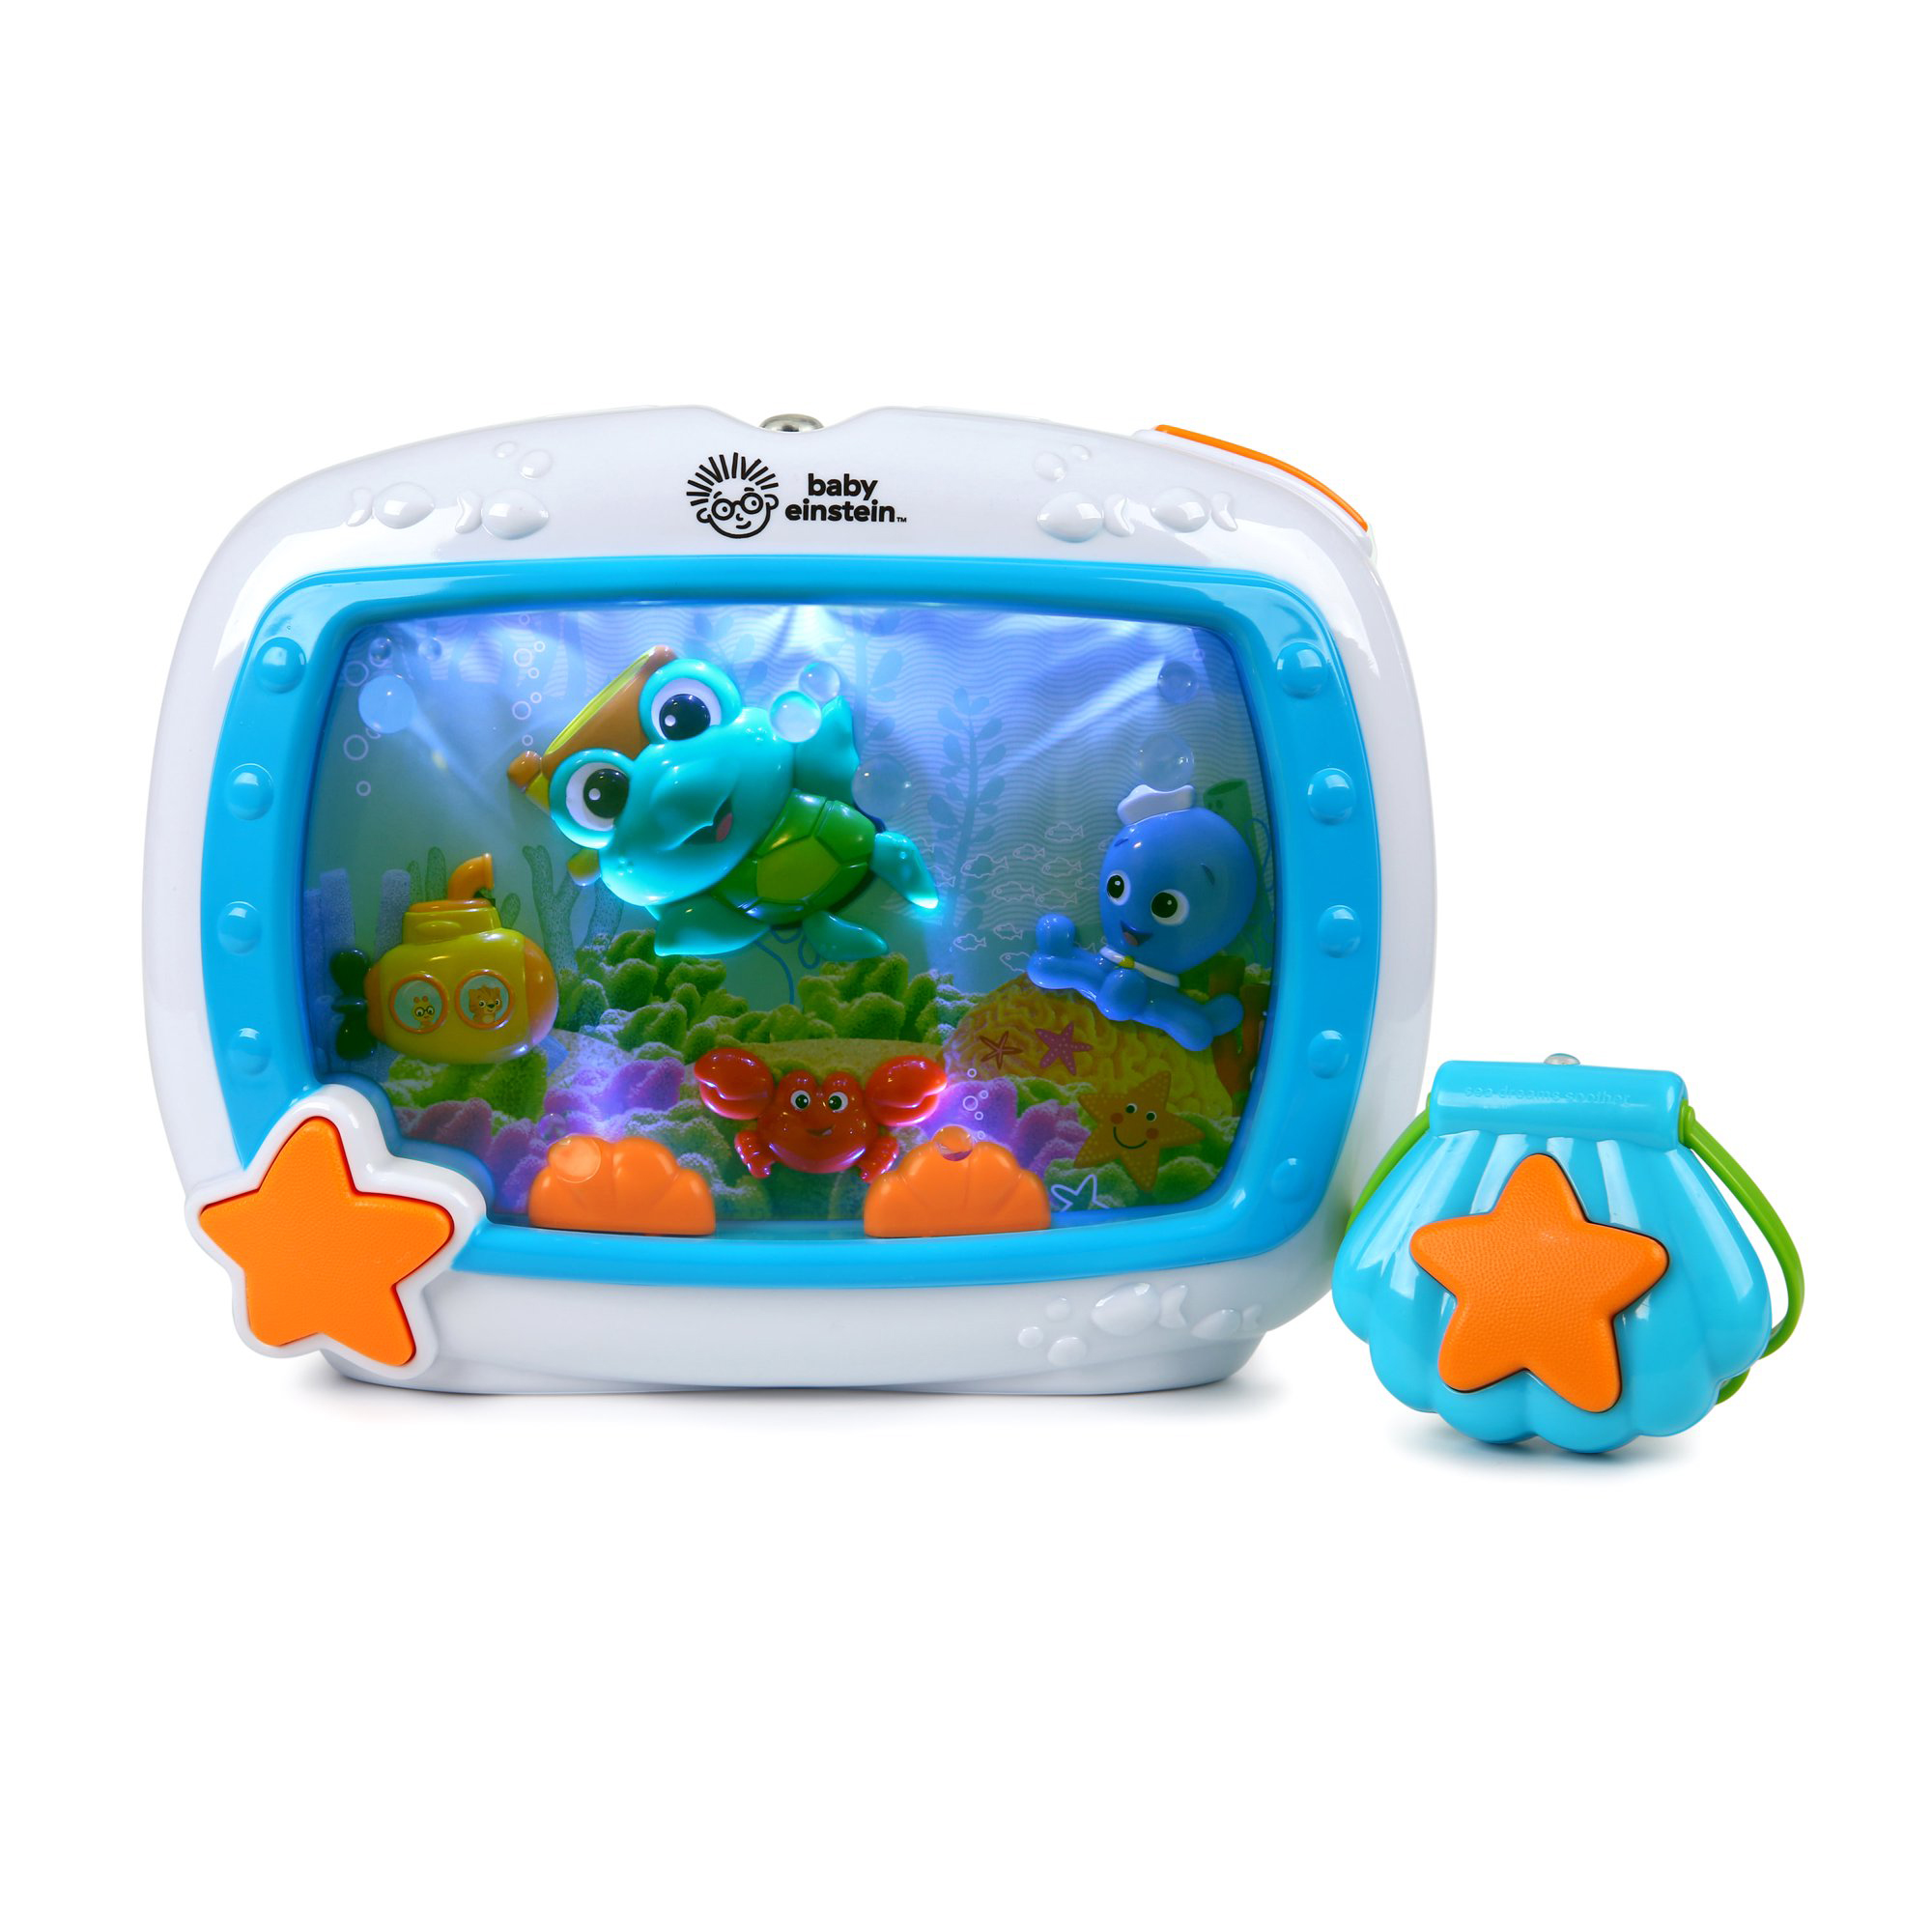 Baby Einstein Sea Dreams Soother Crib Toy with Remote, Lights and Melodies